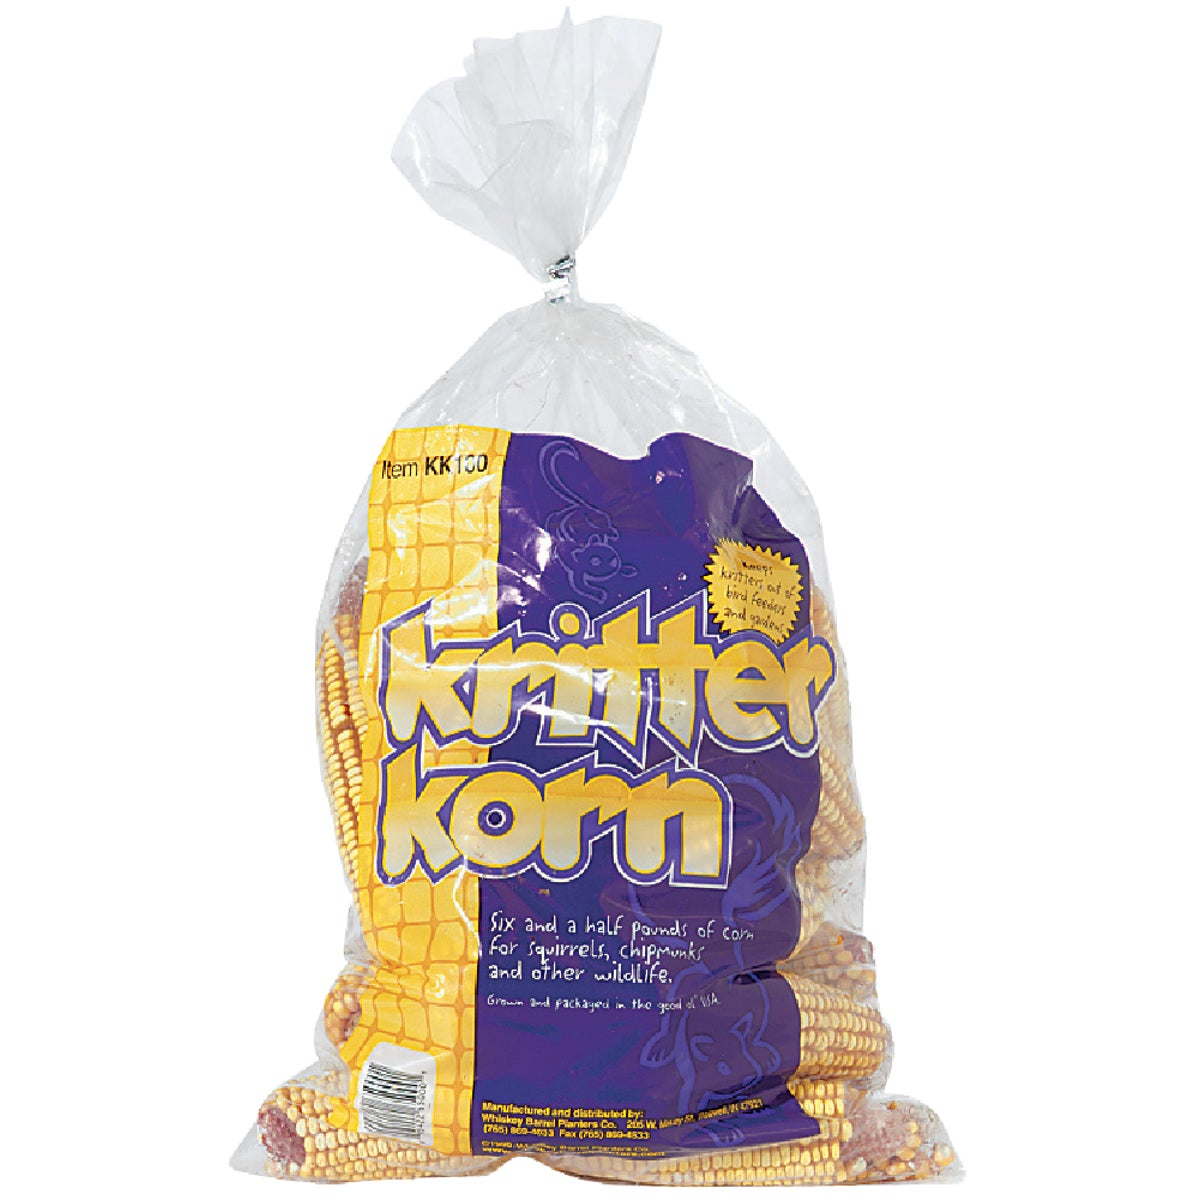 16LB SQUIRREL CORN - KK-16 by American Gardenworks